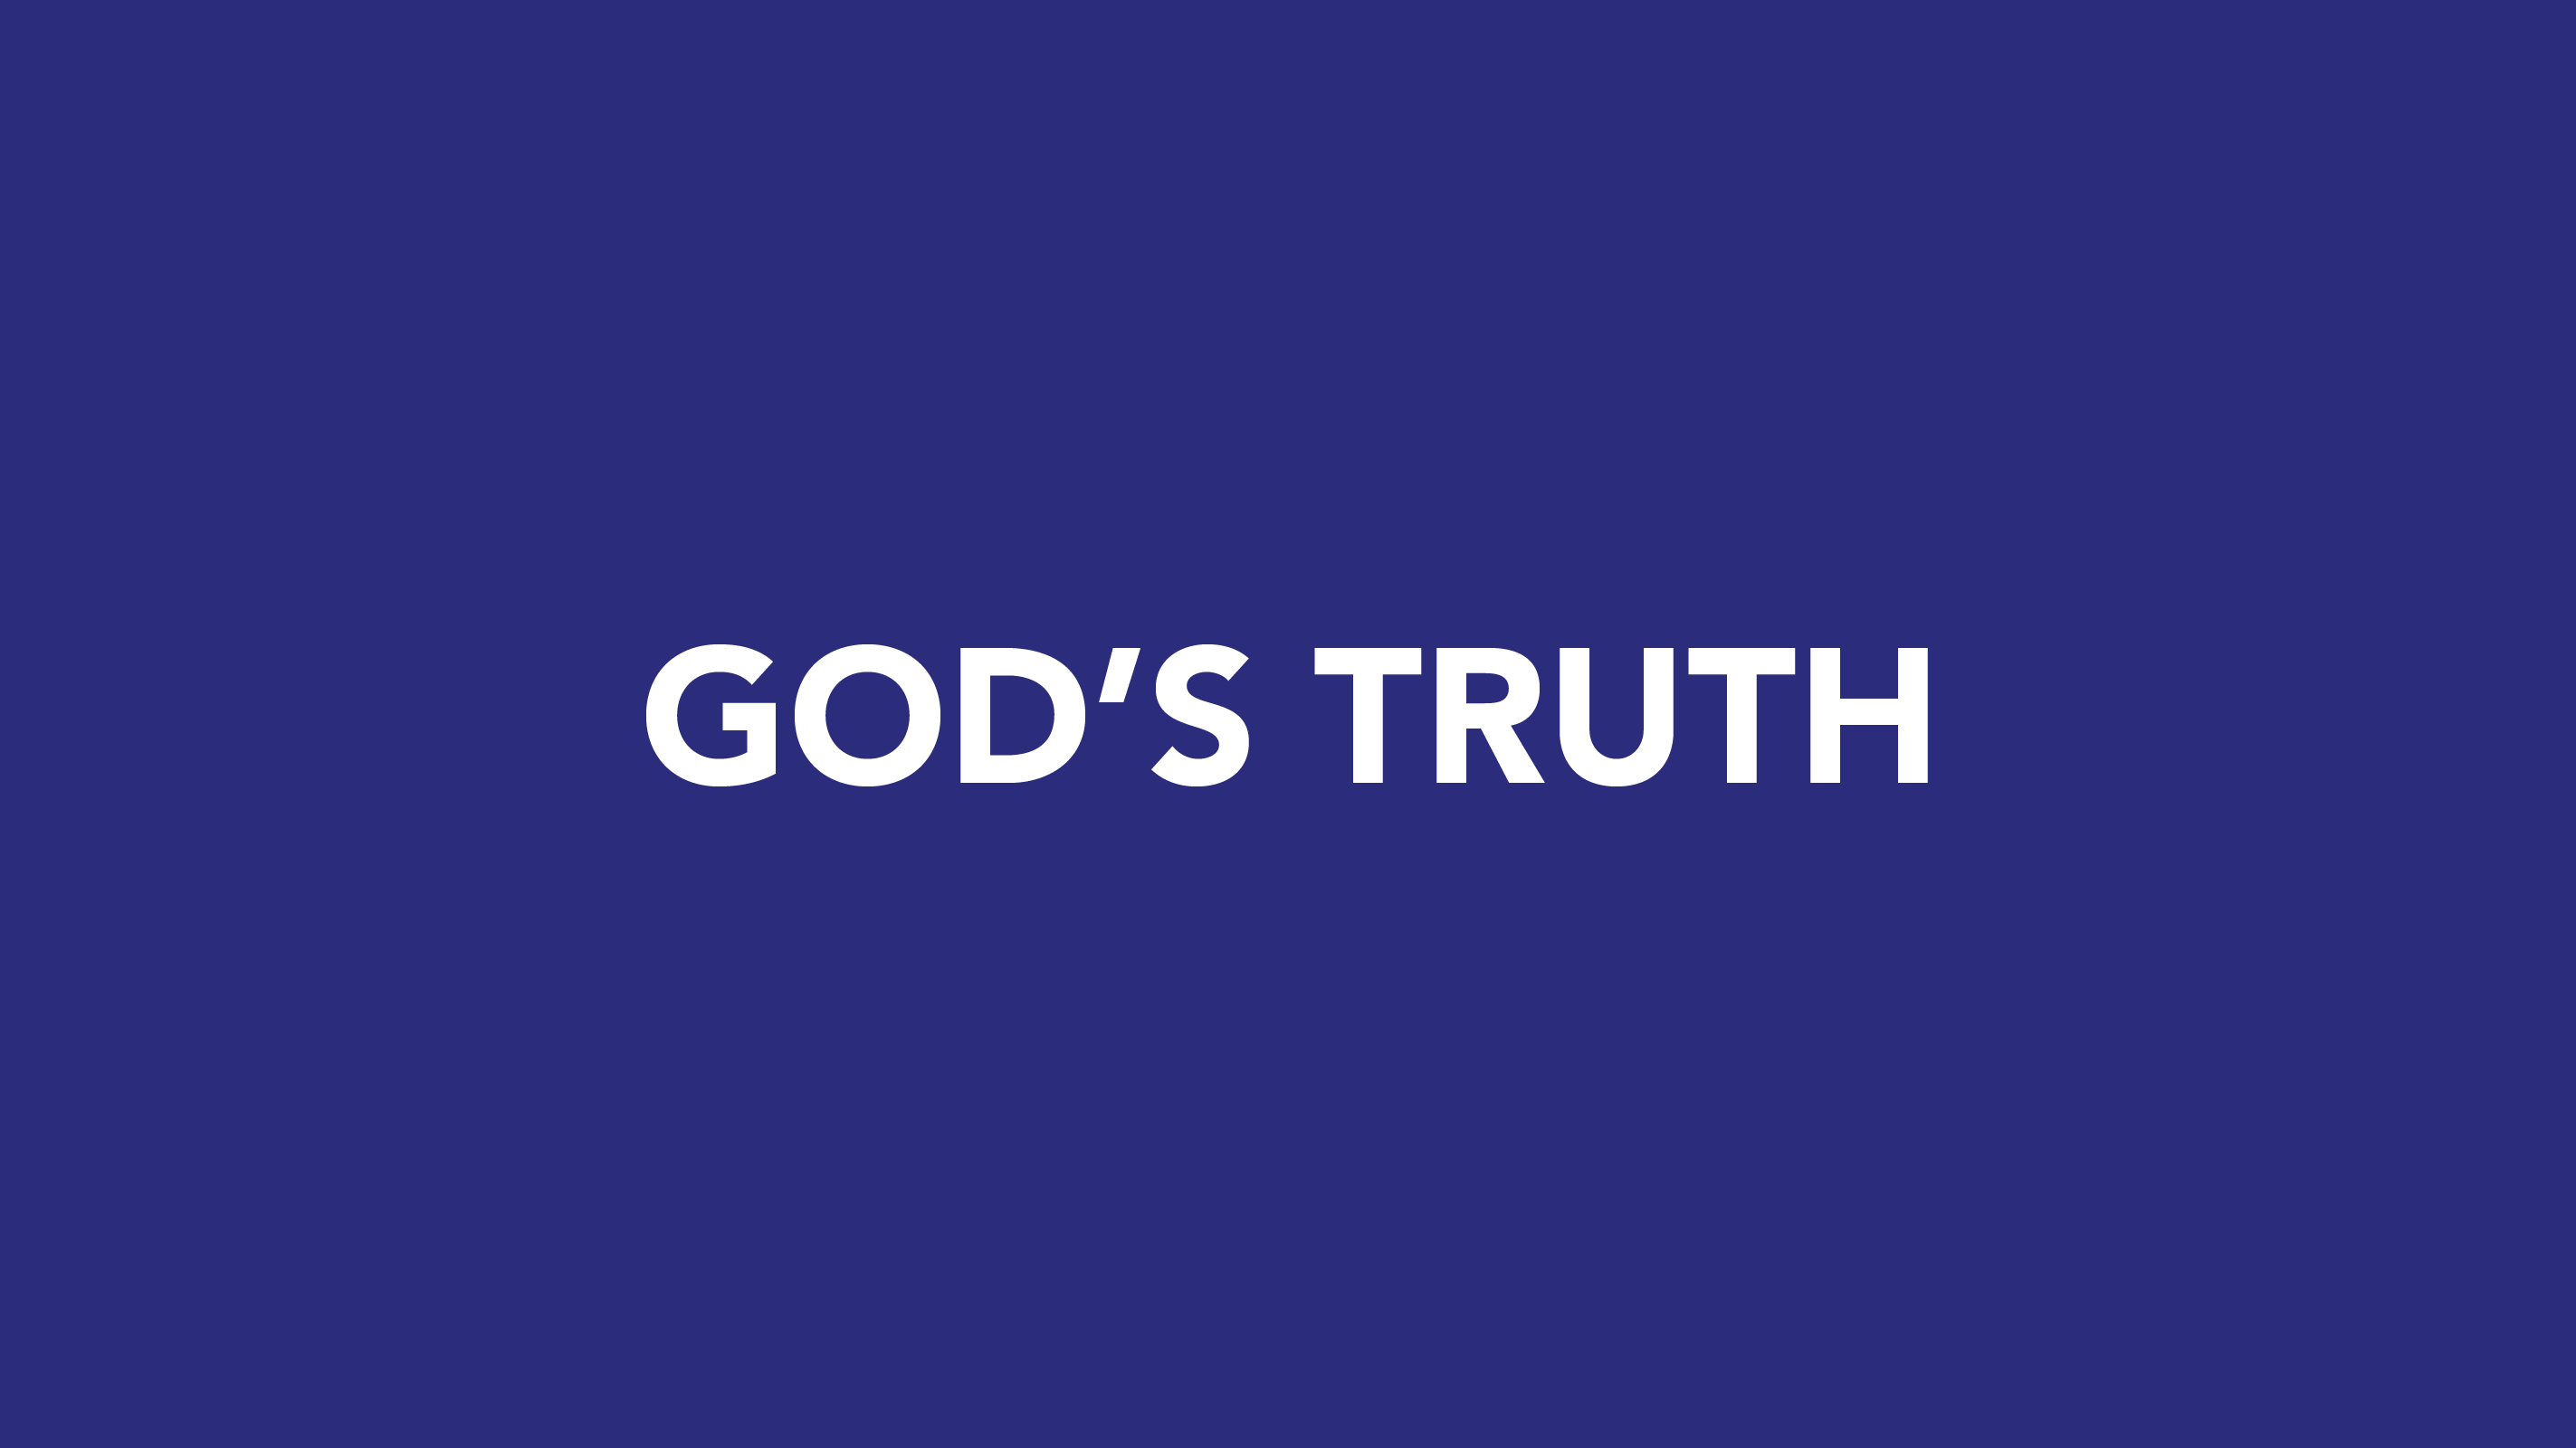 GOD'S TRUTH